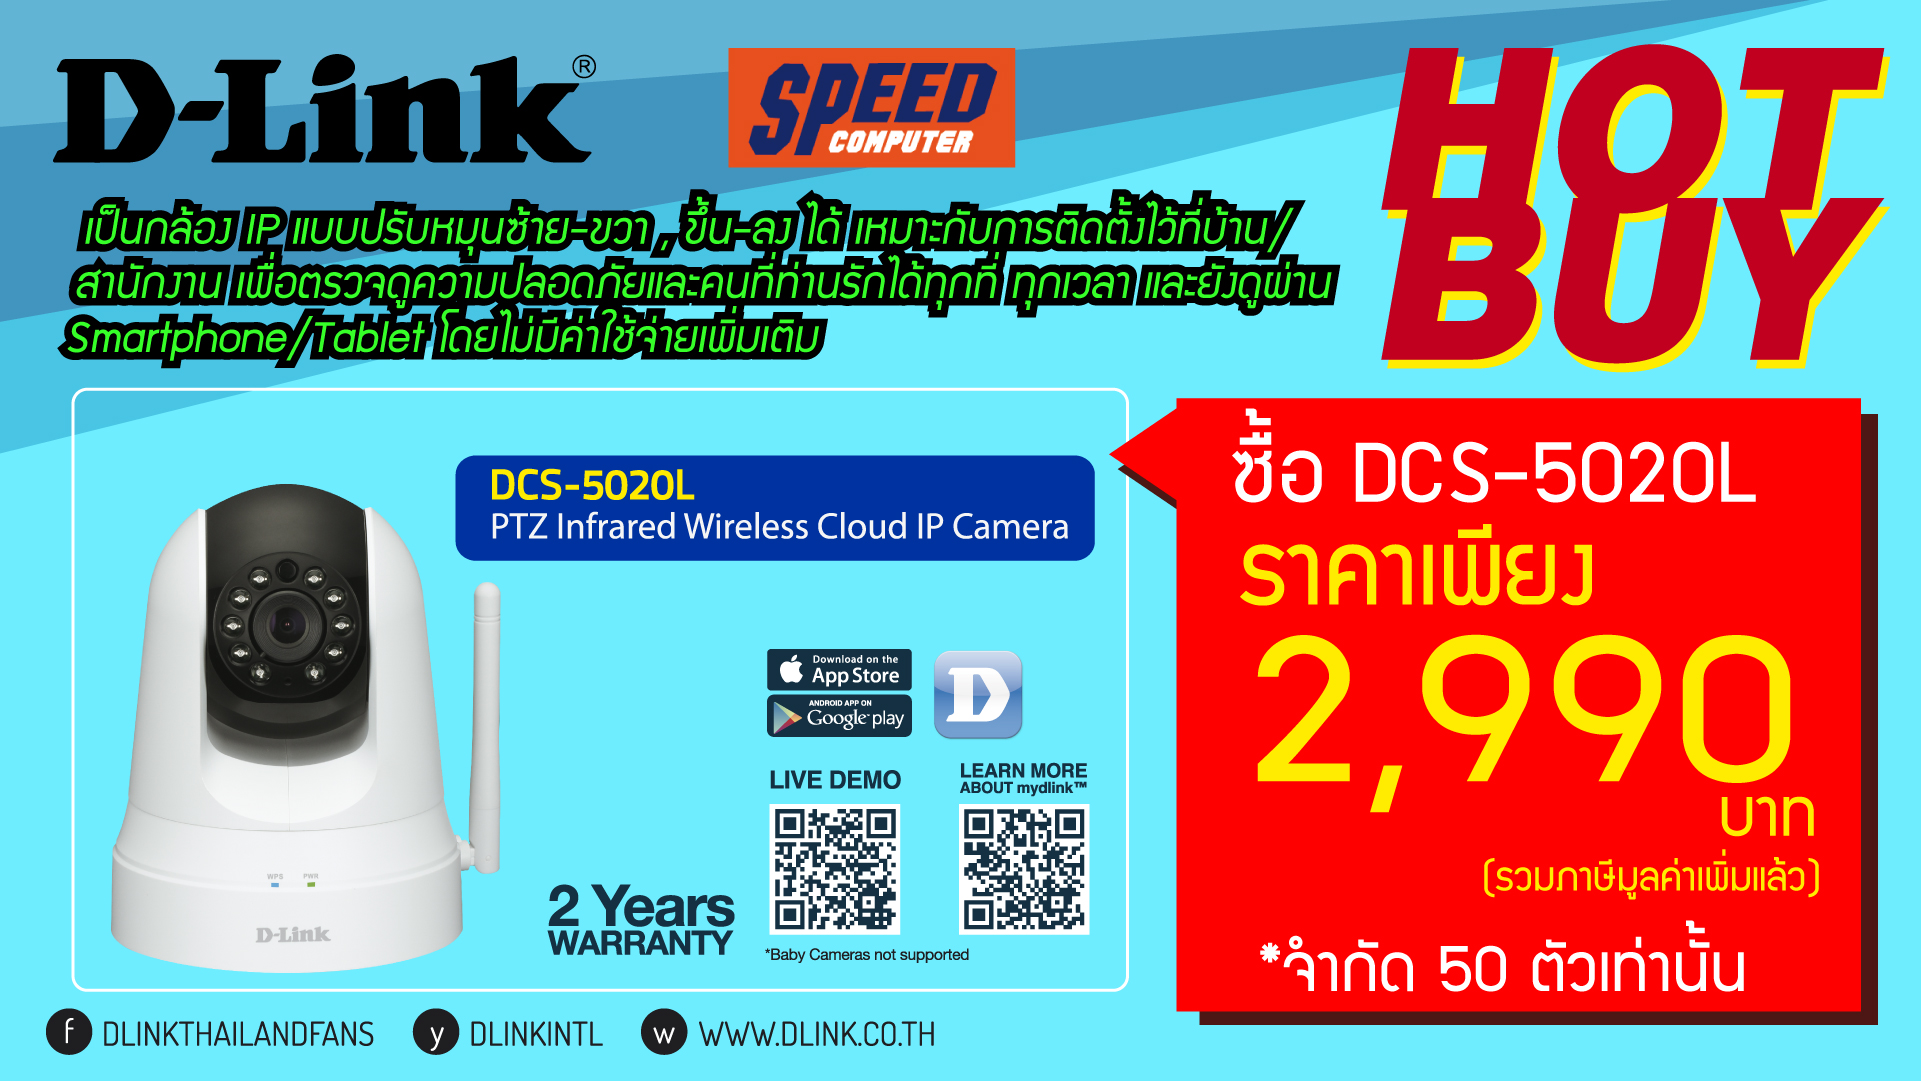 D-Link-Commart-Screen-for-Speed-March-16-05